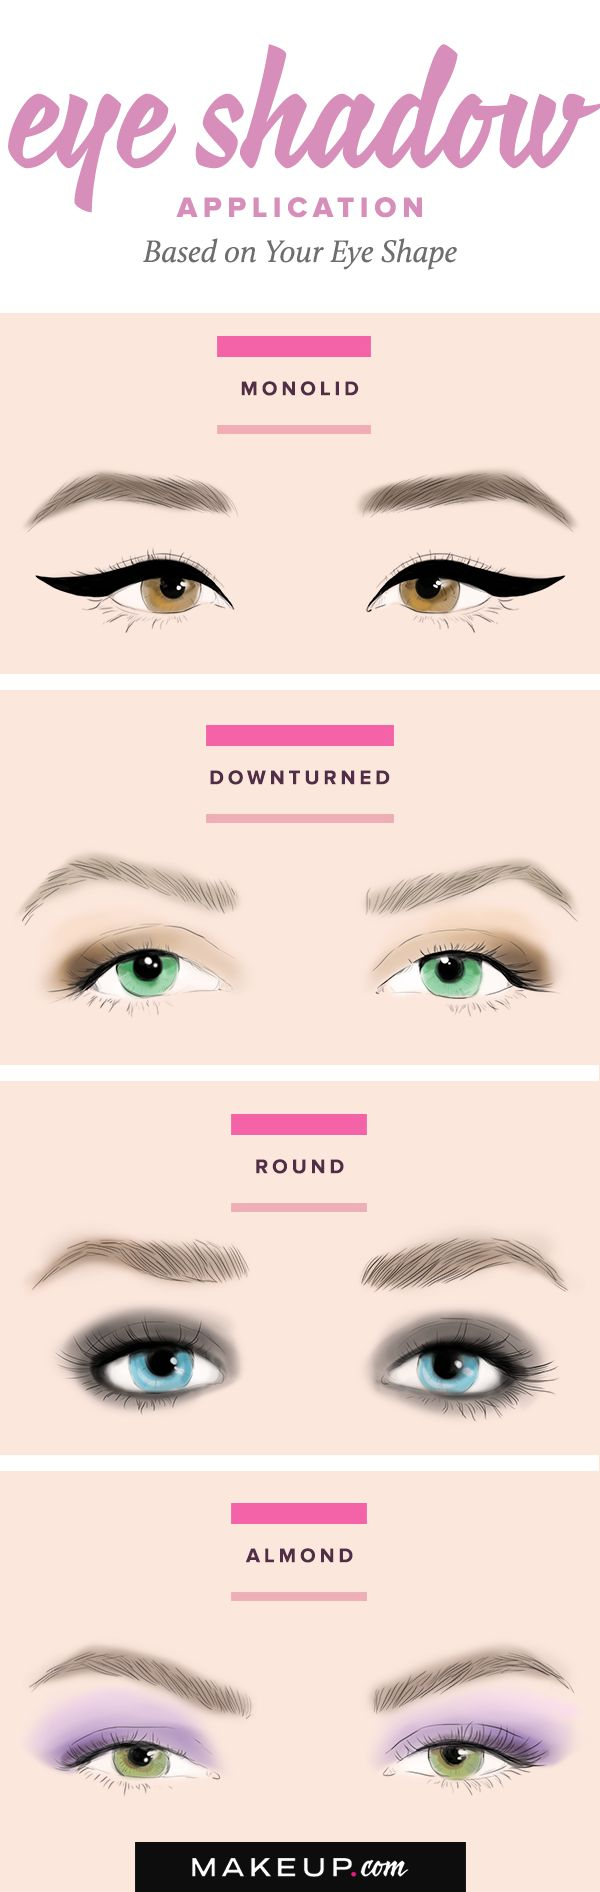 With so many different, gorgeous shapes and sizes of eyes, there's a lot to play with when it comes to applying eye shadow. Applying makeup to eyes isn't a one-size-fits all sort of transaction -- it's about enhancing and accentuating what you got. Here's a general guide on how to apply eye makeup for all the gorgeous peepers out there. Whether your eyes are monolid, downturned, round or almond shaped, we have tips for eye makeup application for you.